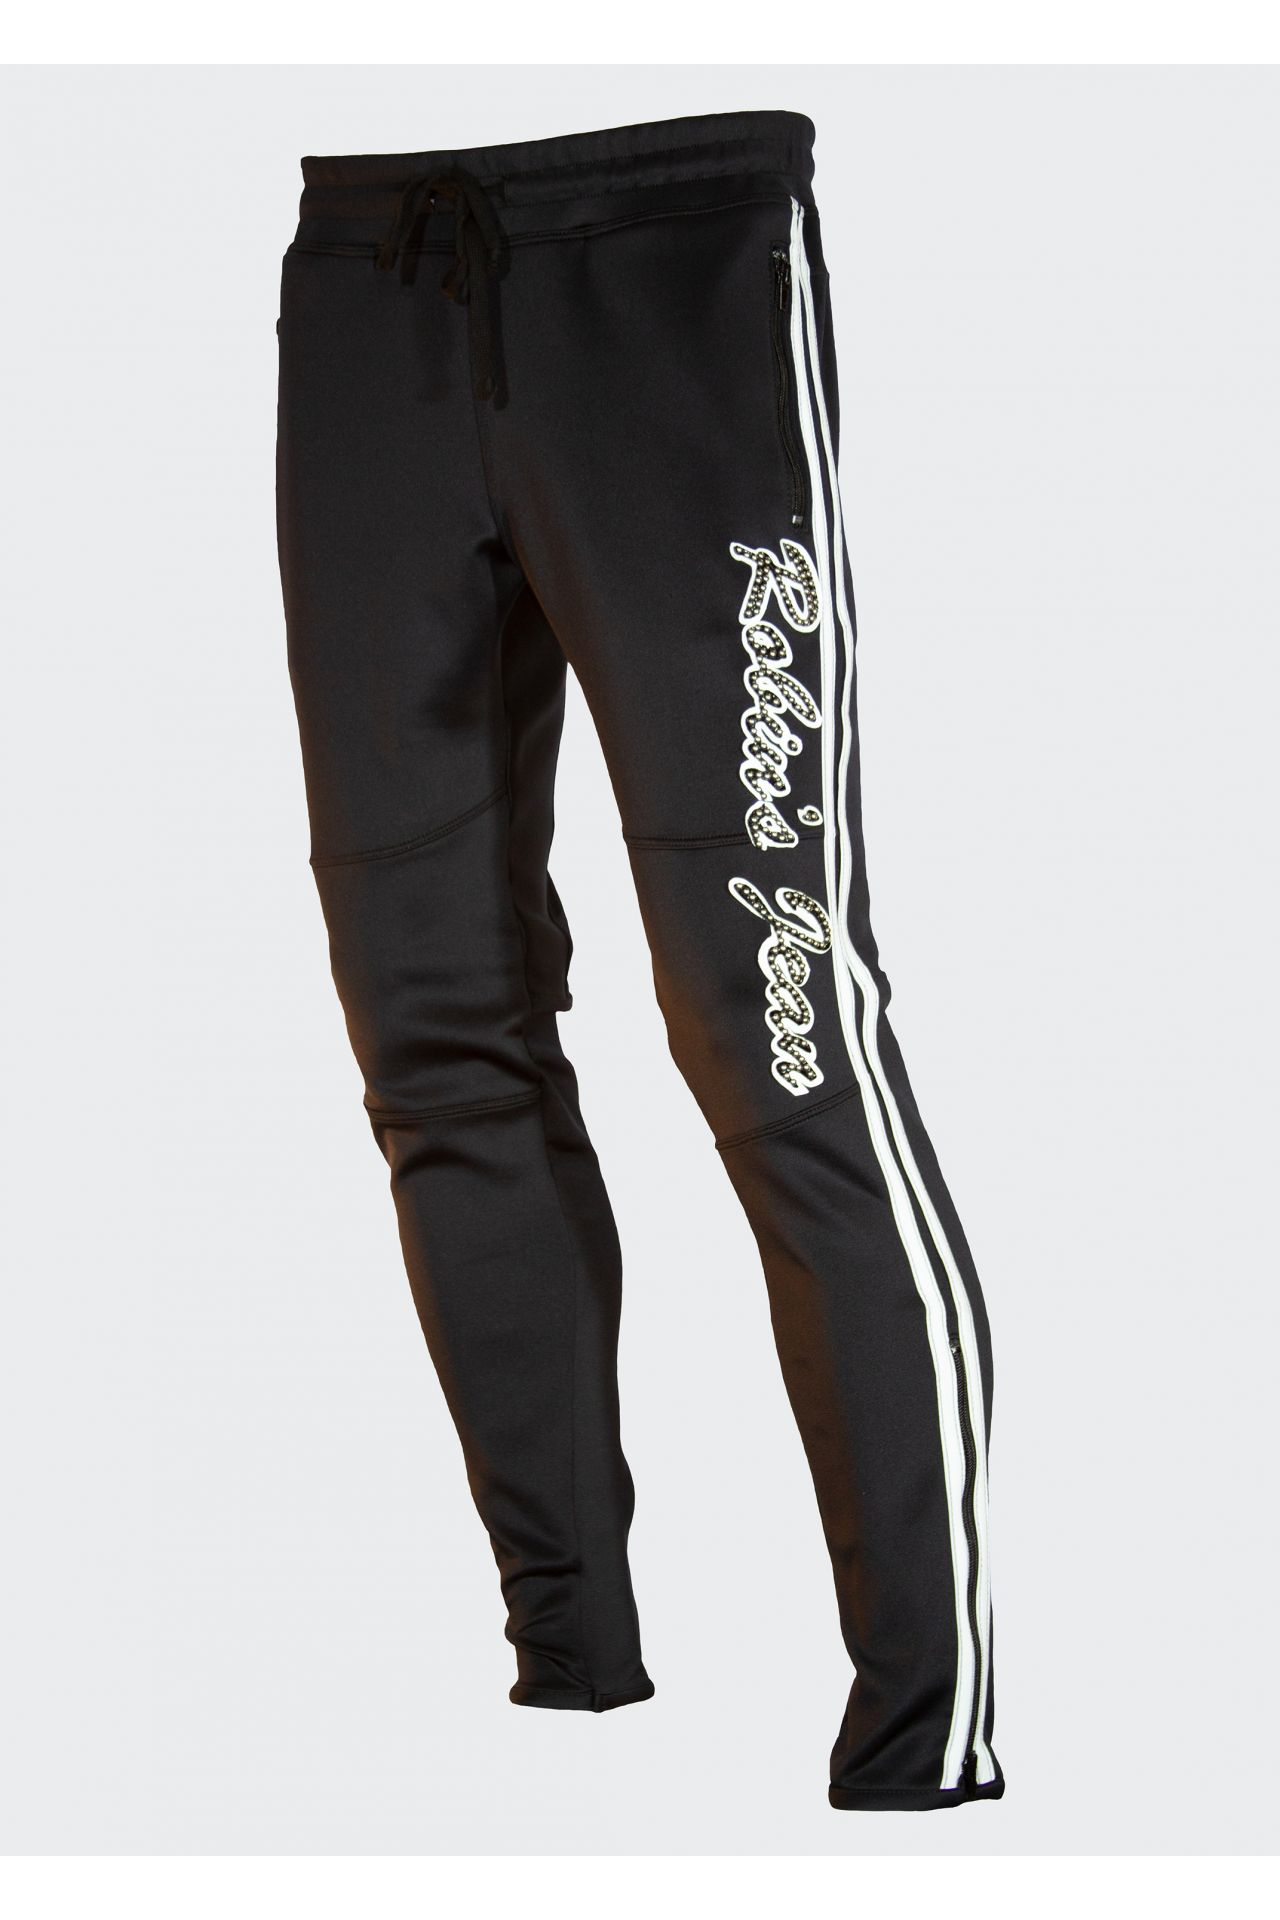 TEAM ROBIN'S JEAN JOGGER IN BLACK